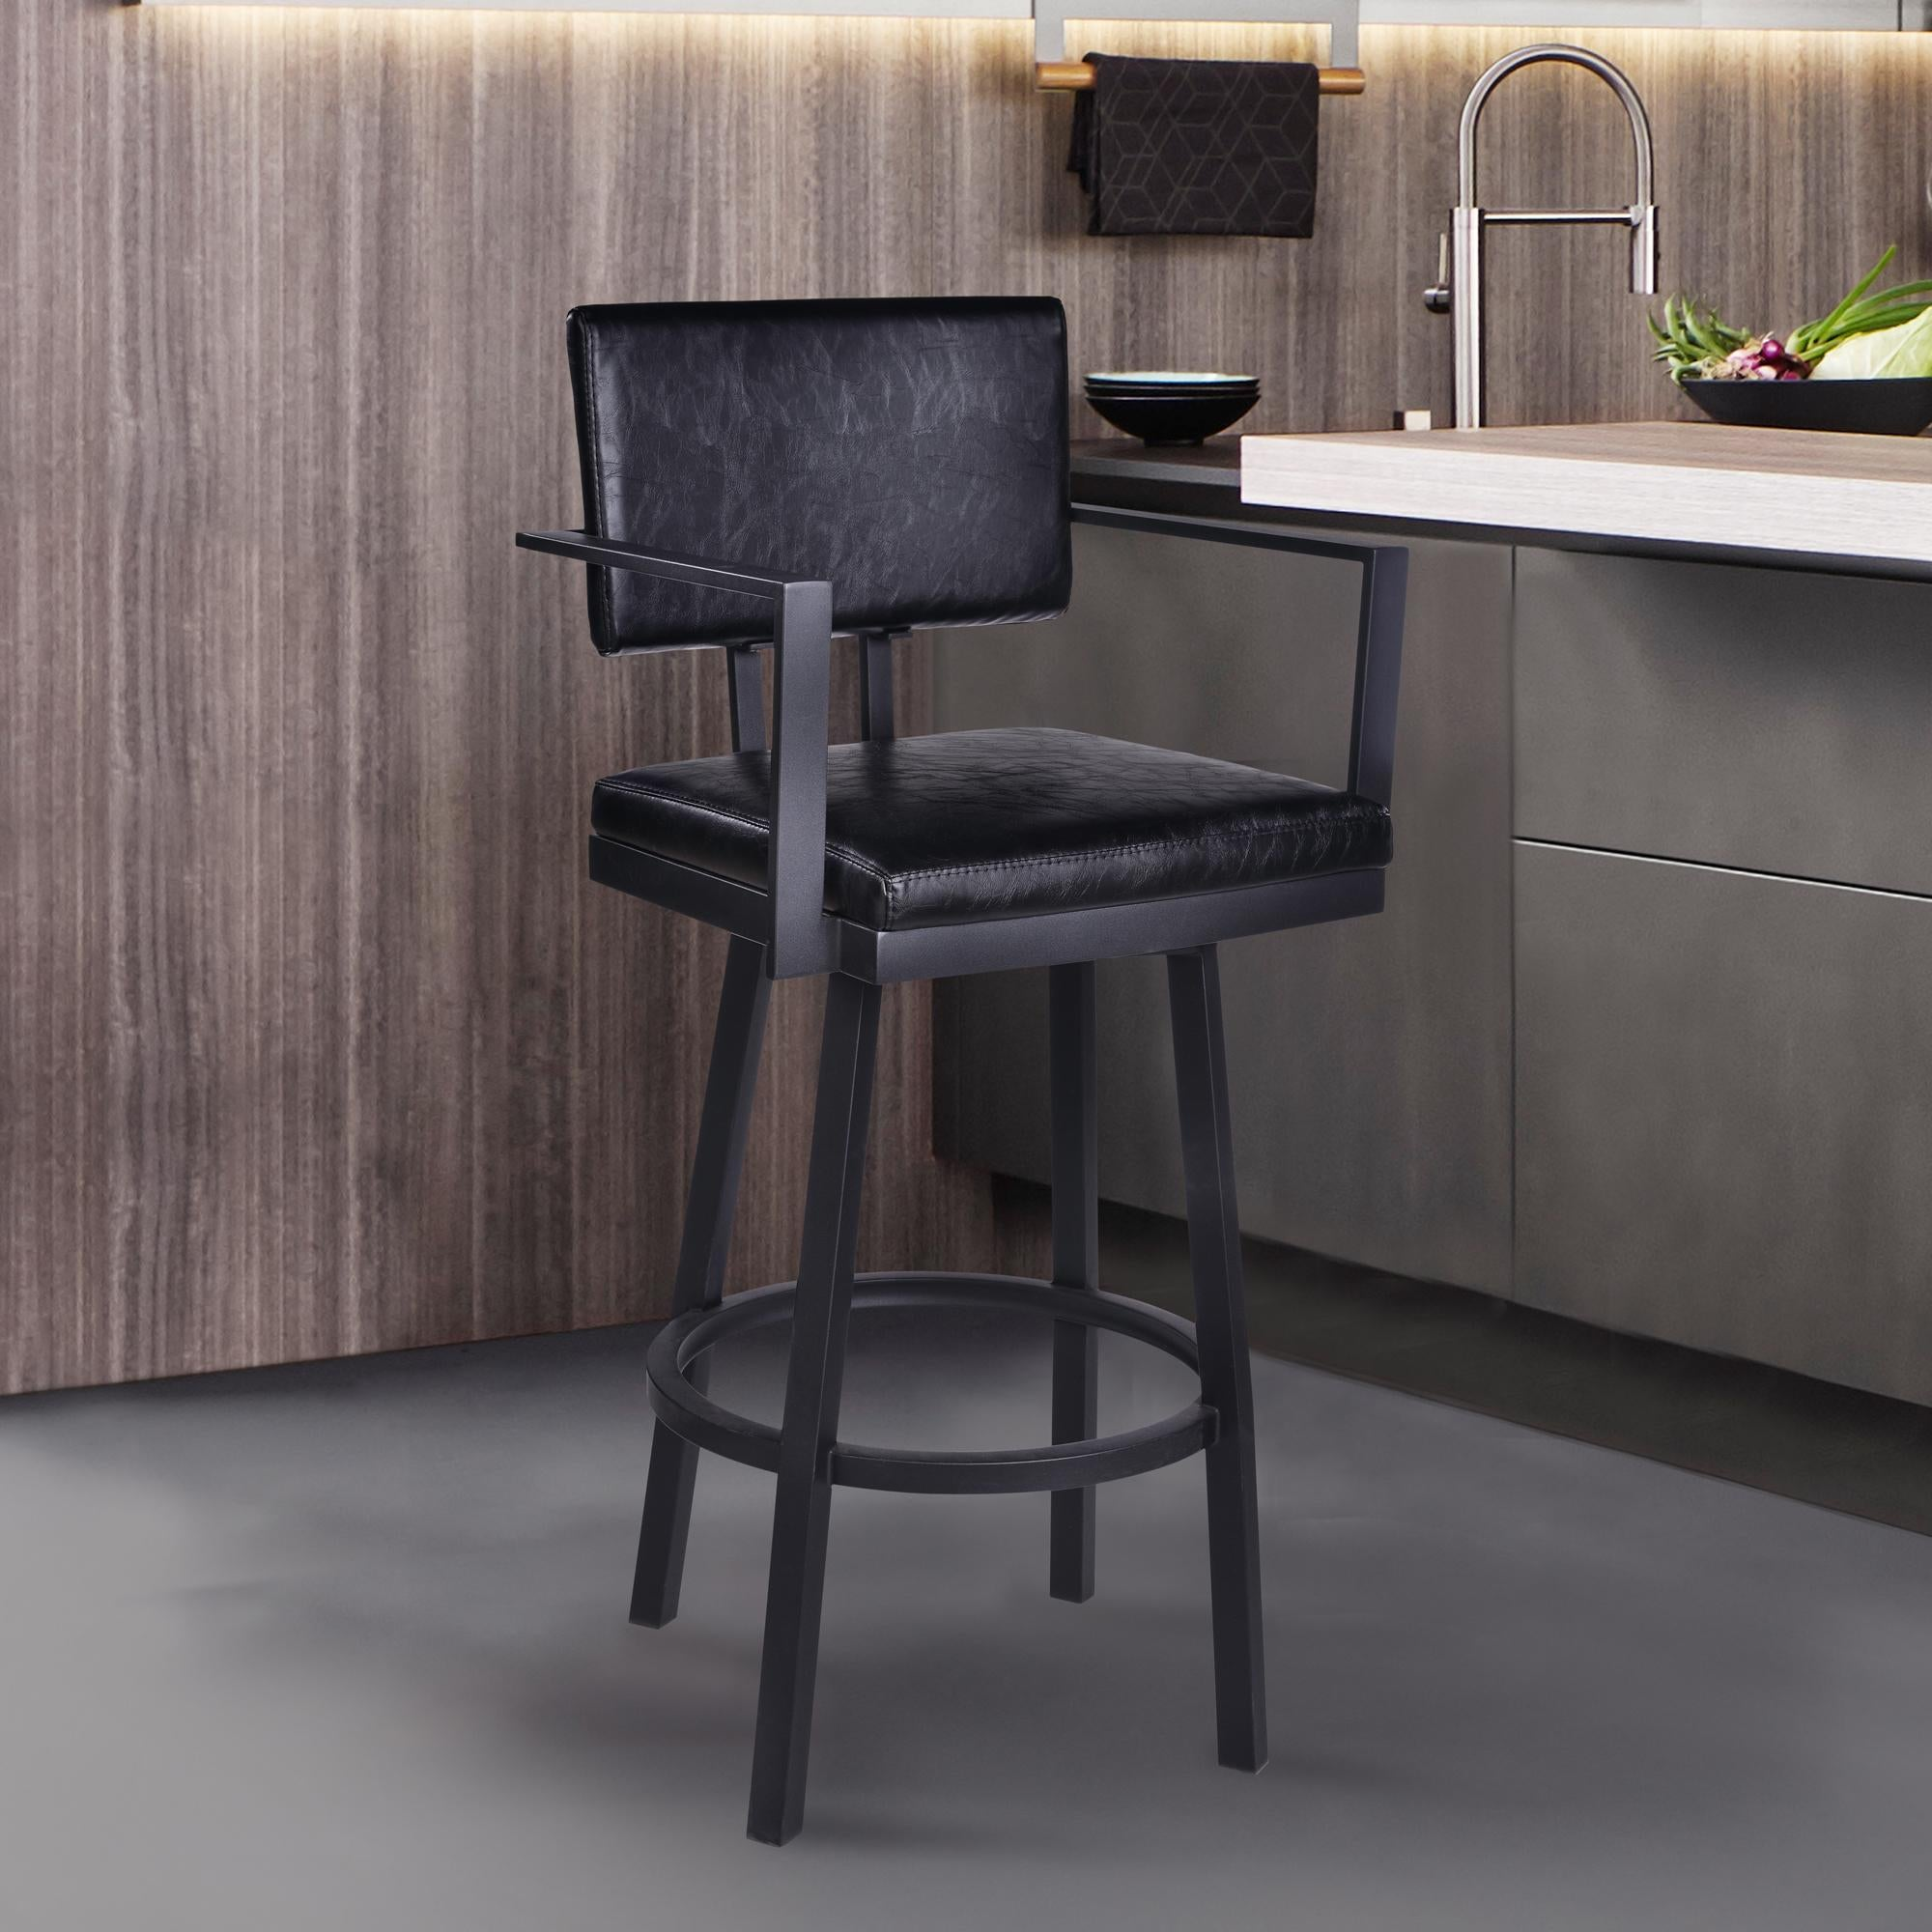 Armen Living Balboa 30 Bar Height Barstool with Arms in Black Powder Coated Finish and Vintage Black Faux Leather